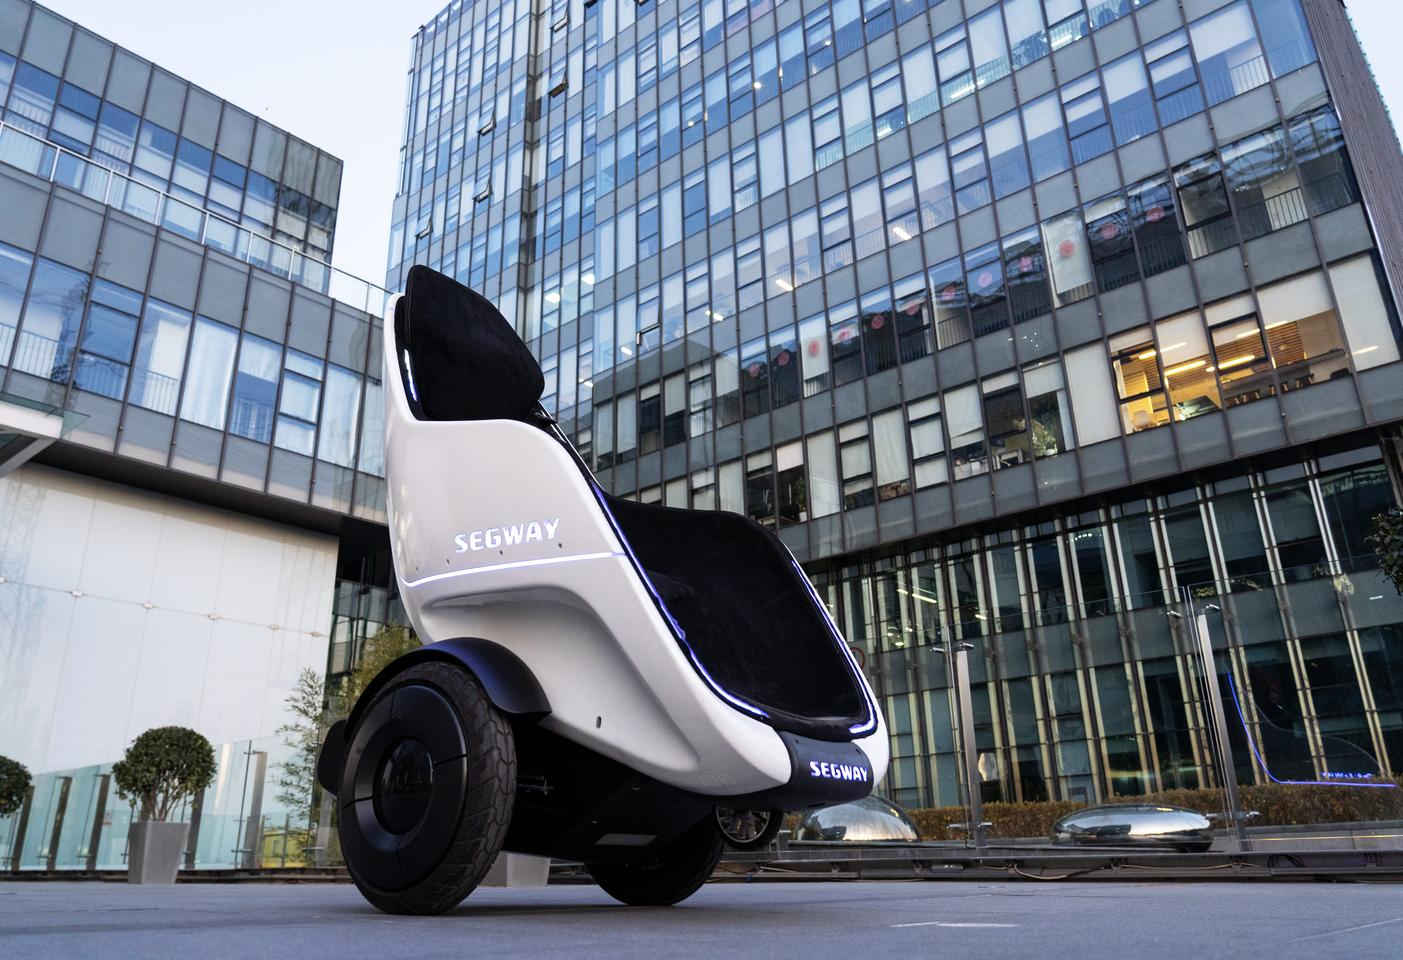 The S-Pod has a top speed of 24 mph and is designed for enclosed campuses